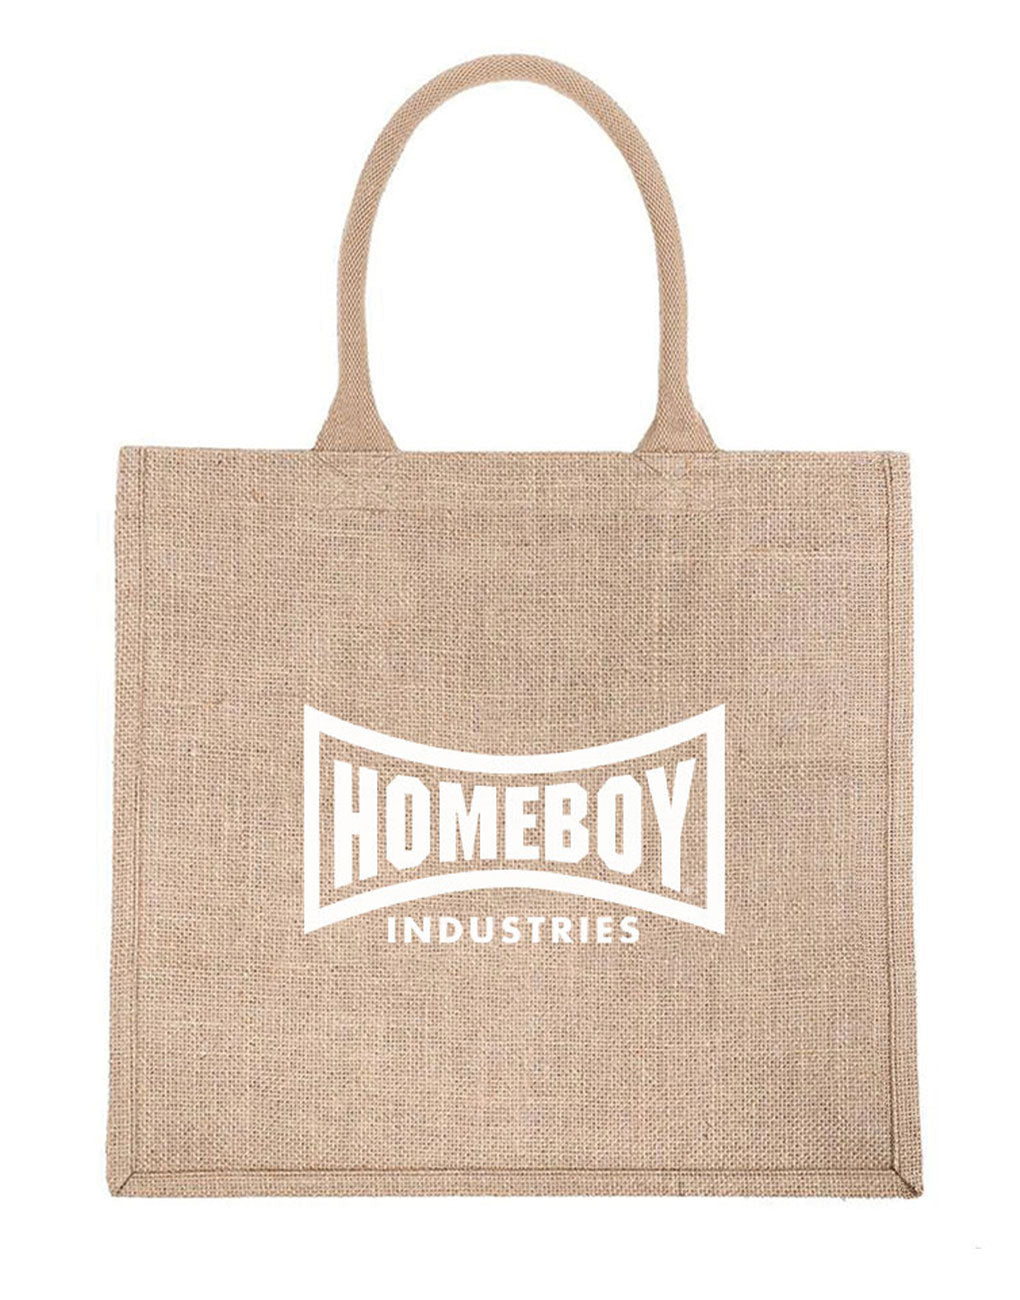 Homeboy Industries Reusable Shopping Tote in White Font | The Little Market